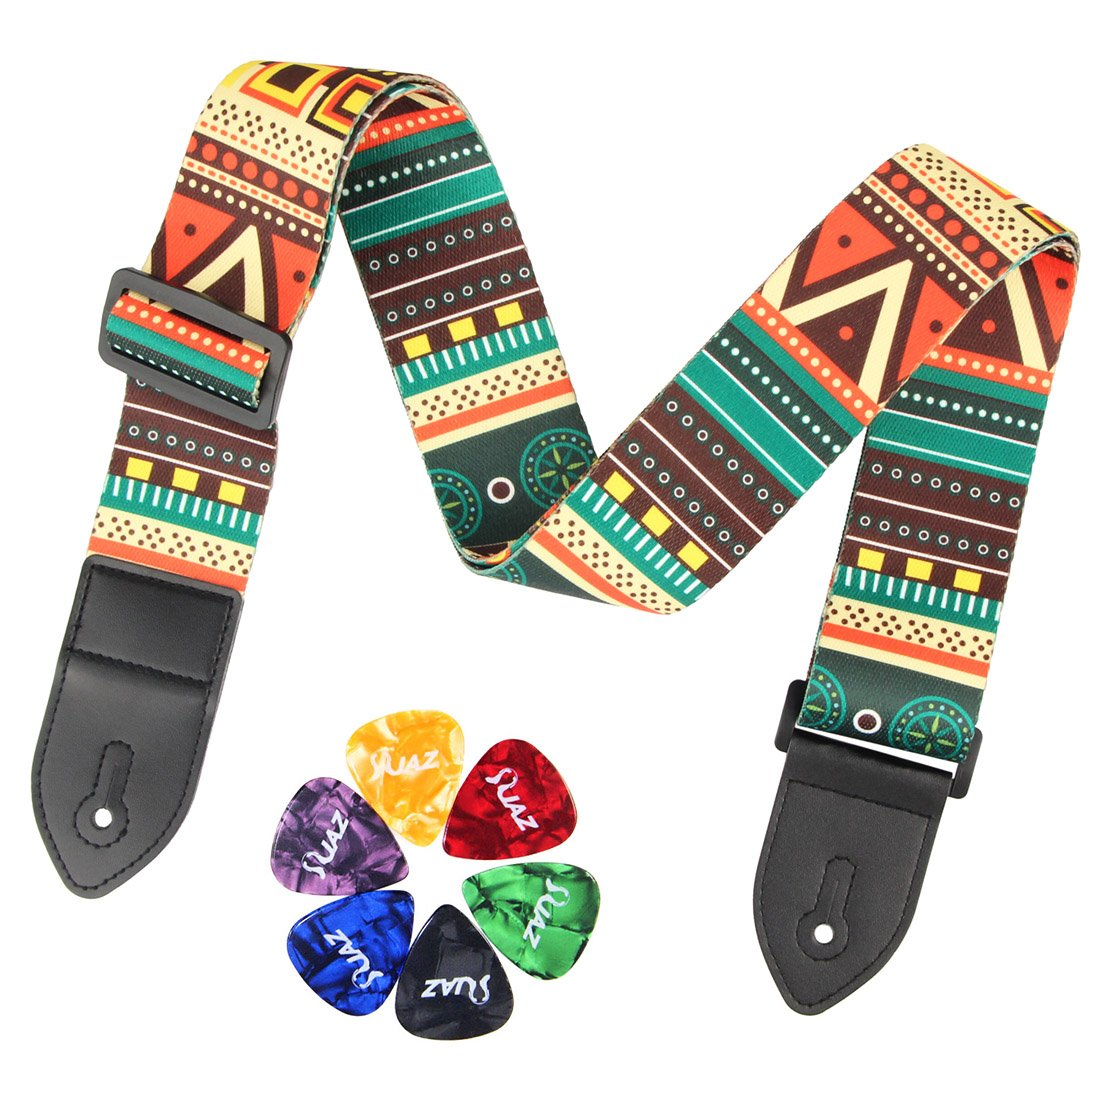 Guitar Strap 2.4in Wide for Acoustic Electric Bass Guitar with Real Leather Ends Includes 6 FREE Guitar Picks (Starry Pattern) Deedose guitar strap TH